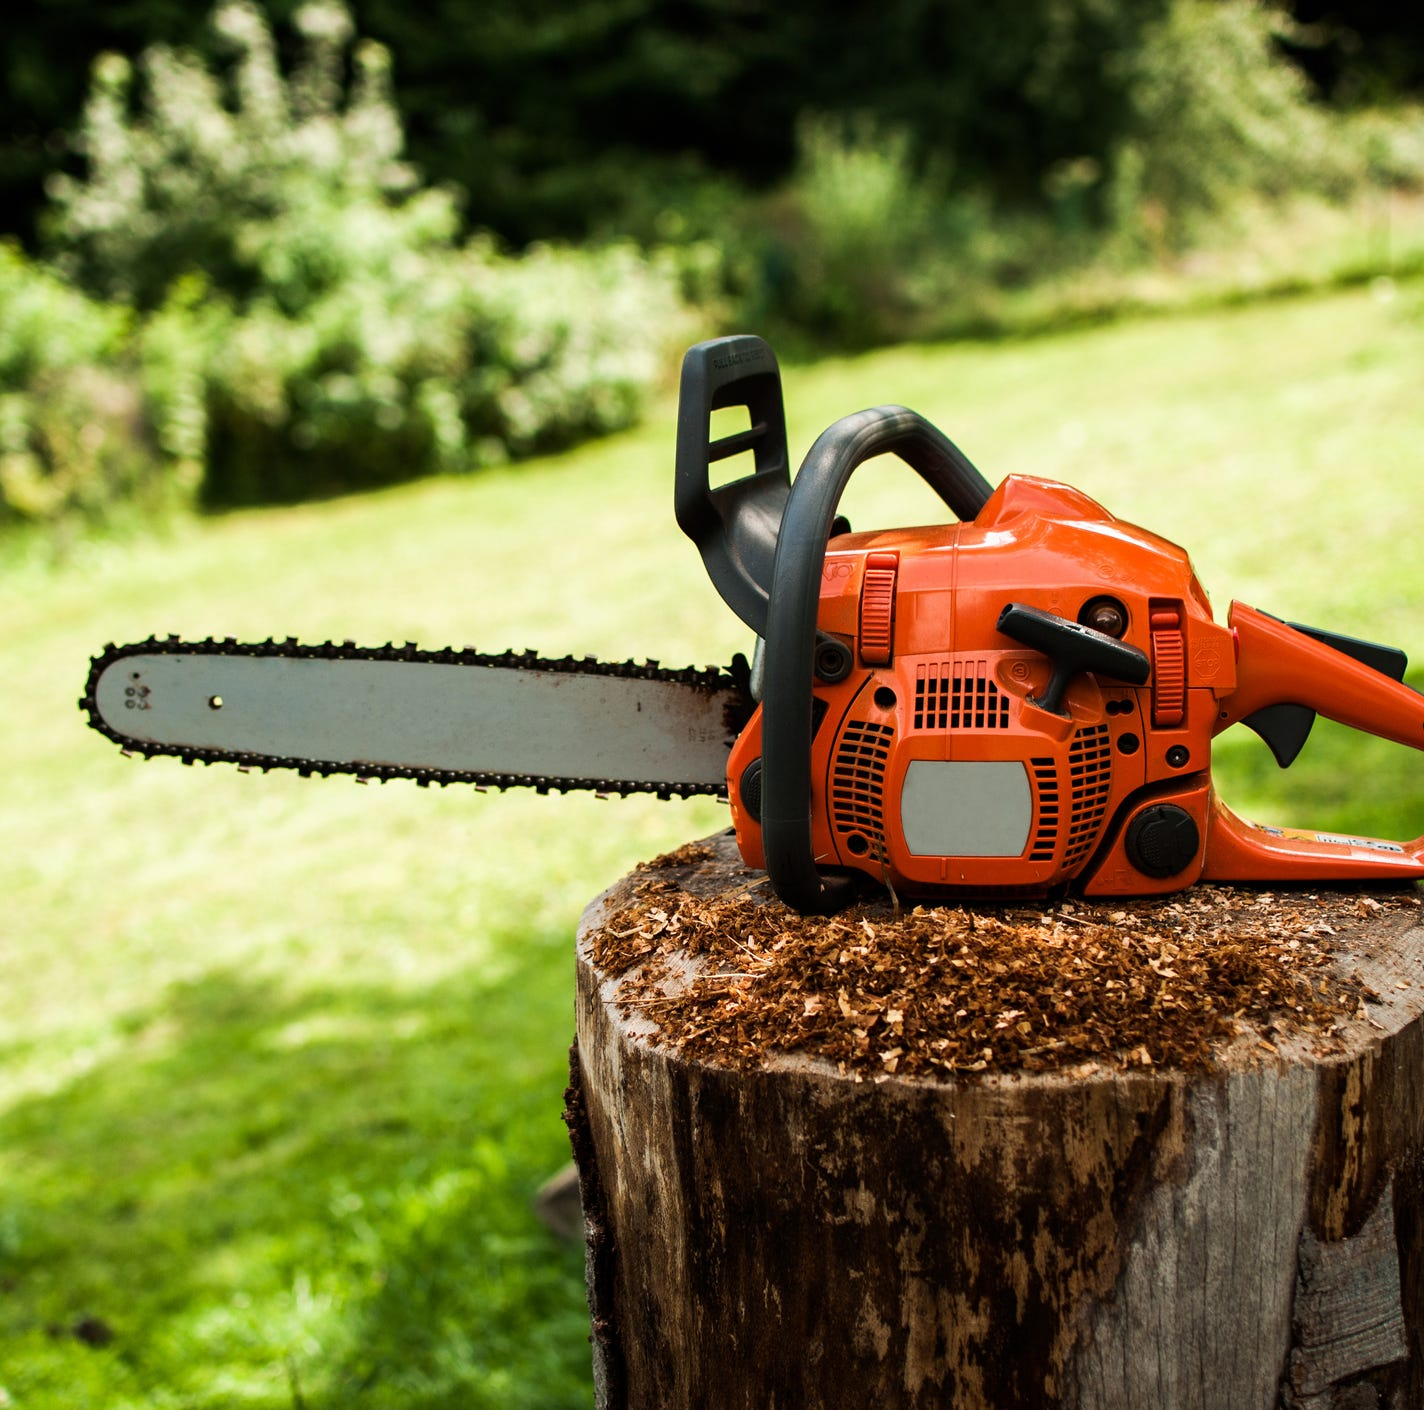 Chainsaw-wielding father attacks son mowing lawn, loses leg